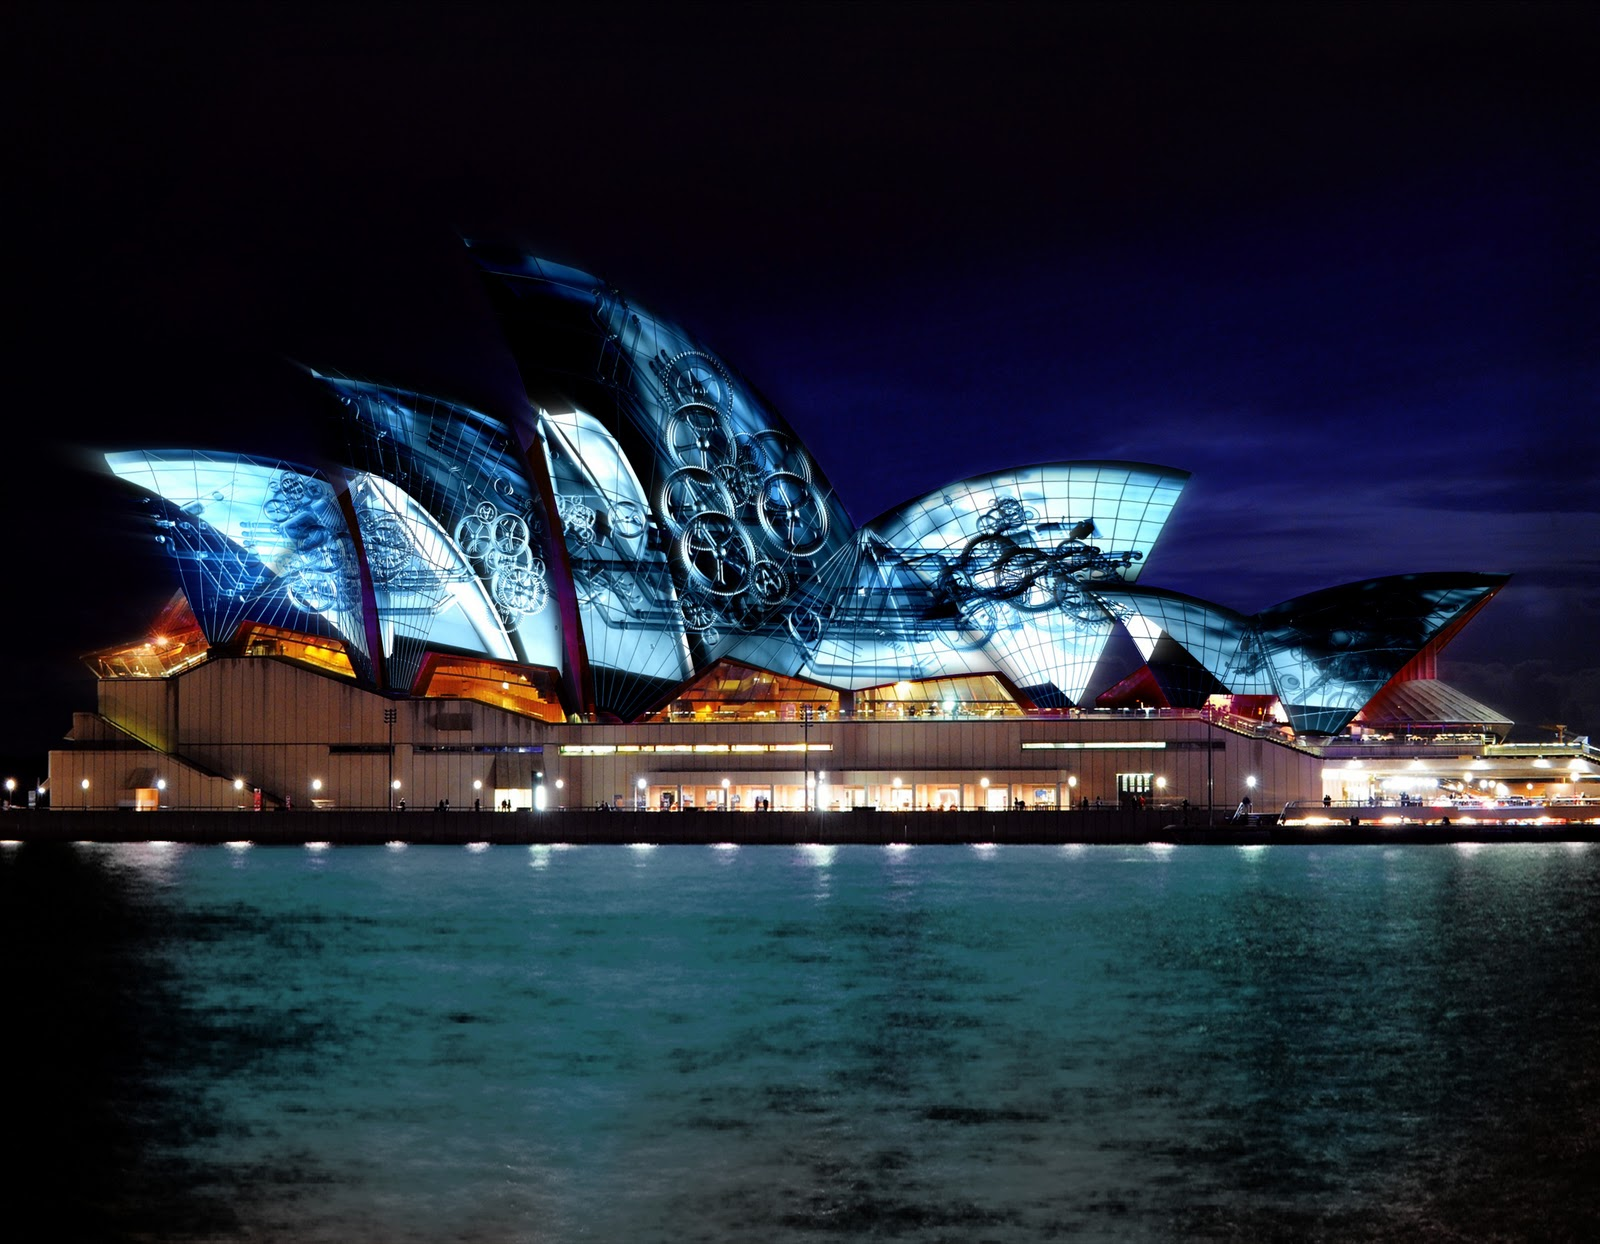 Opera House+Sydney+Australia+18 - View Pictures Of Sydney Australia Opera House  Pics